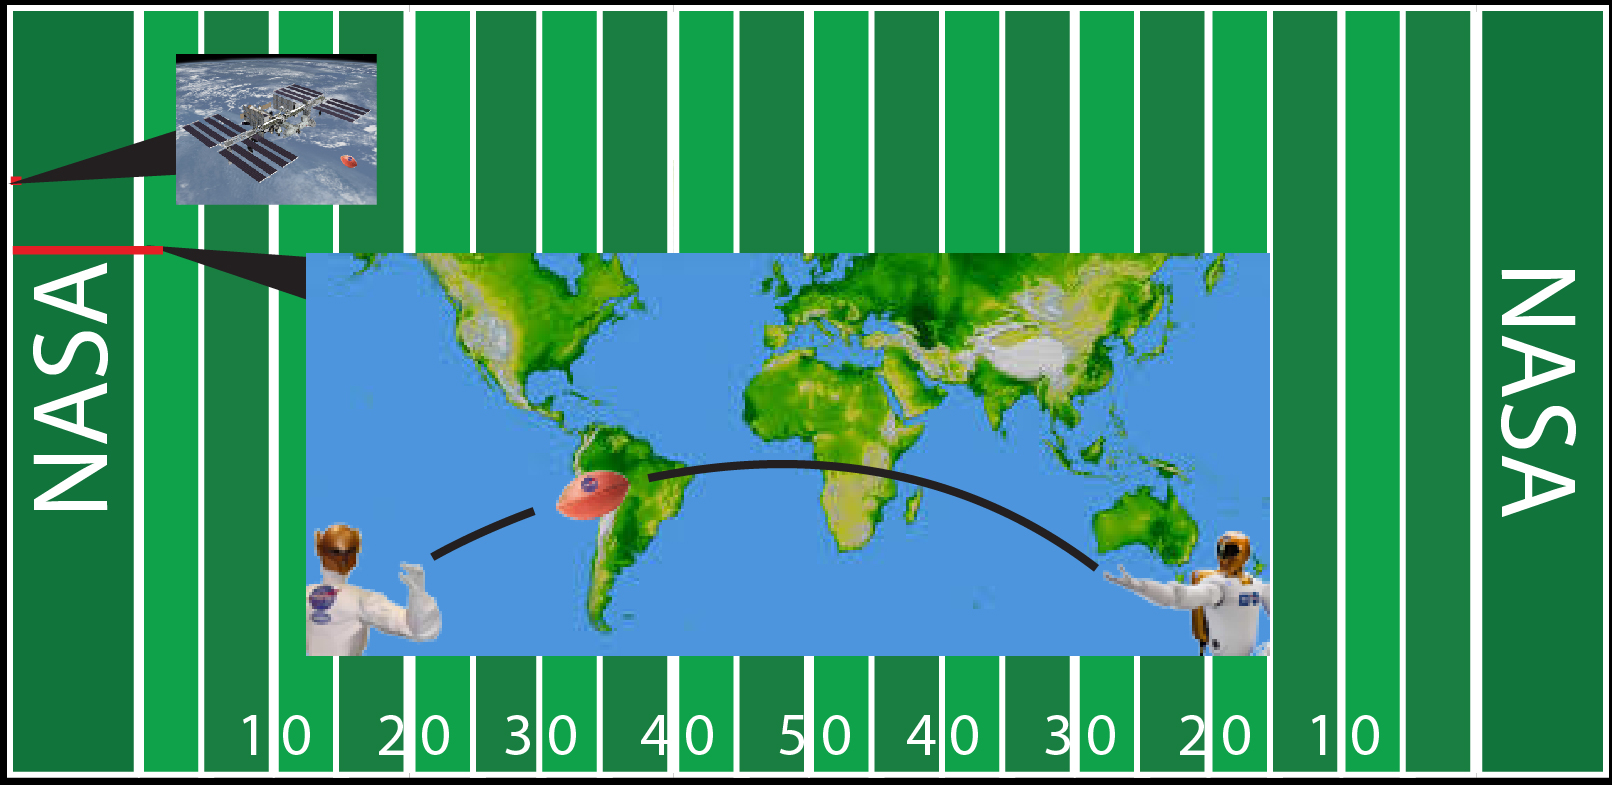 A graphic showing a map of the Earth outside the end zone of a football field